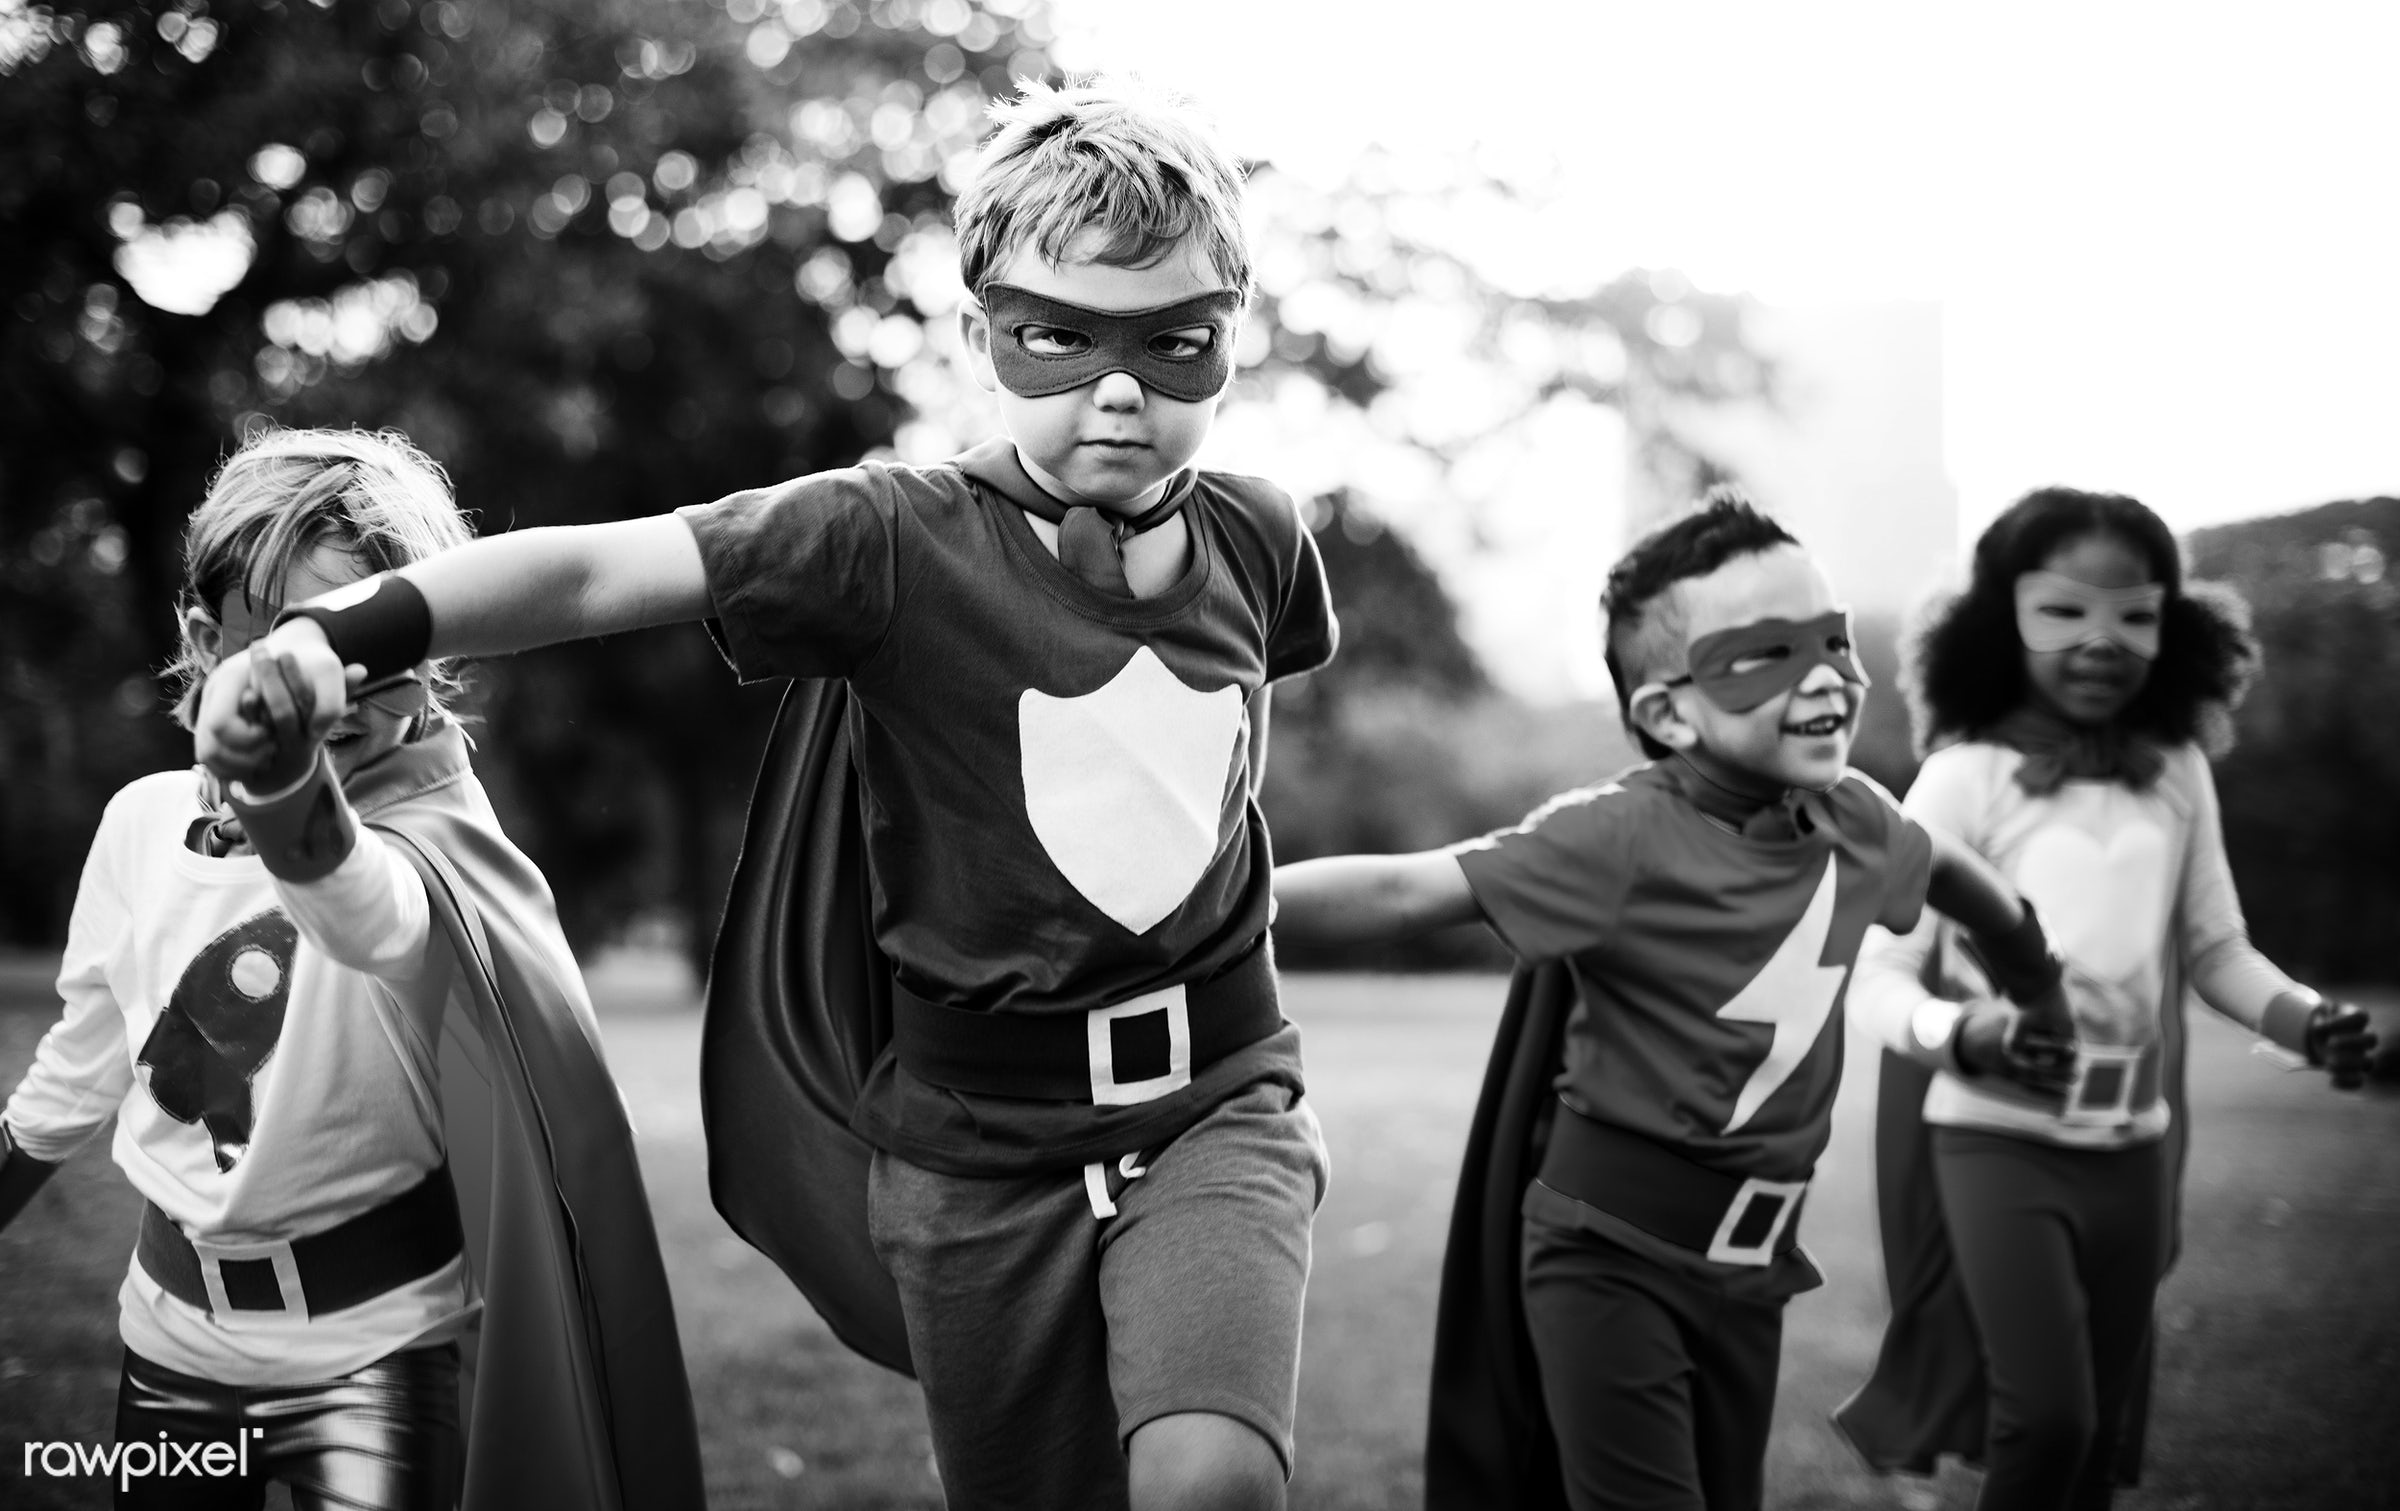 Kids Wear Superhero Costume Outdoors - superhero, active, activities, adorable, african american, asian, black and white,...